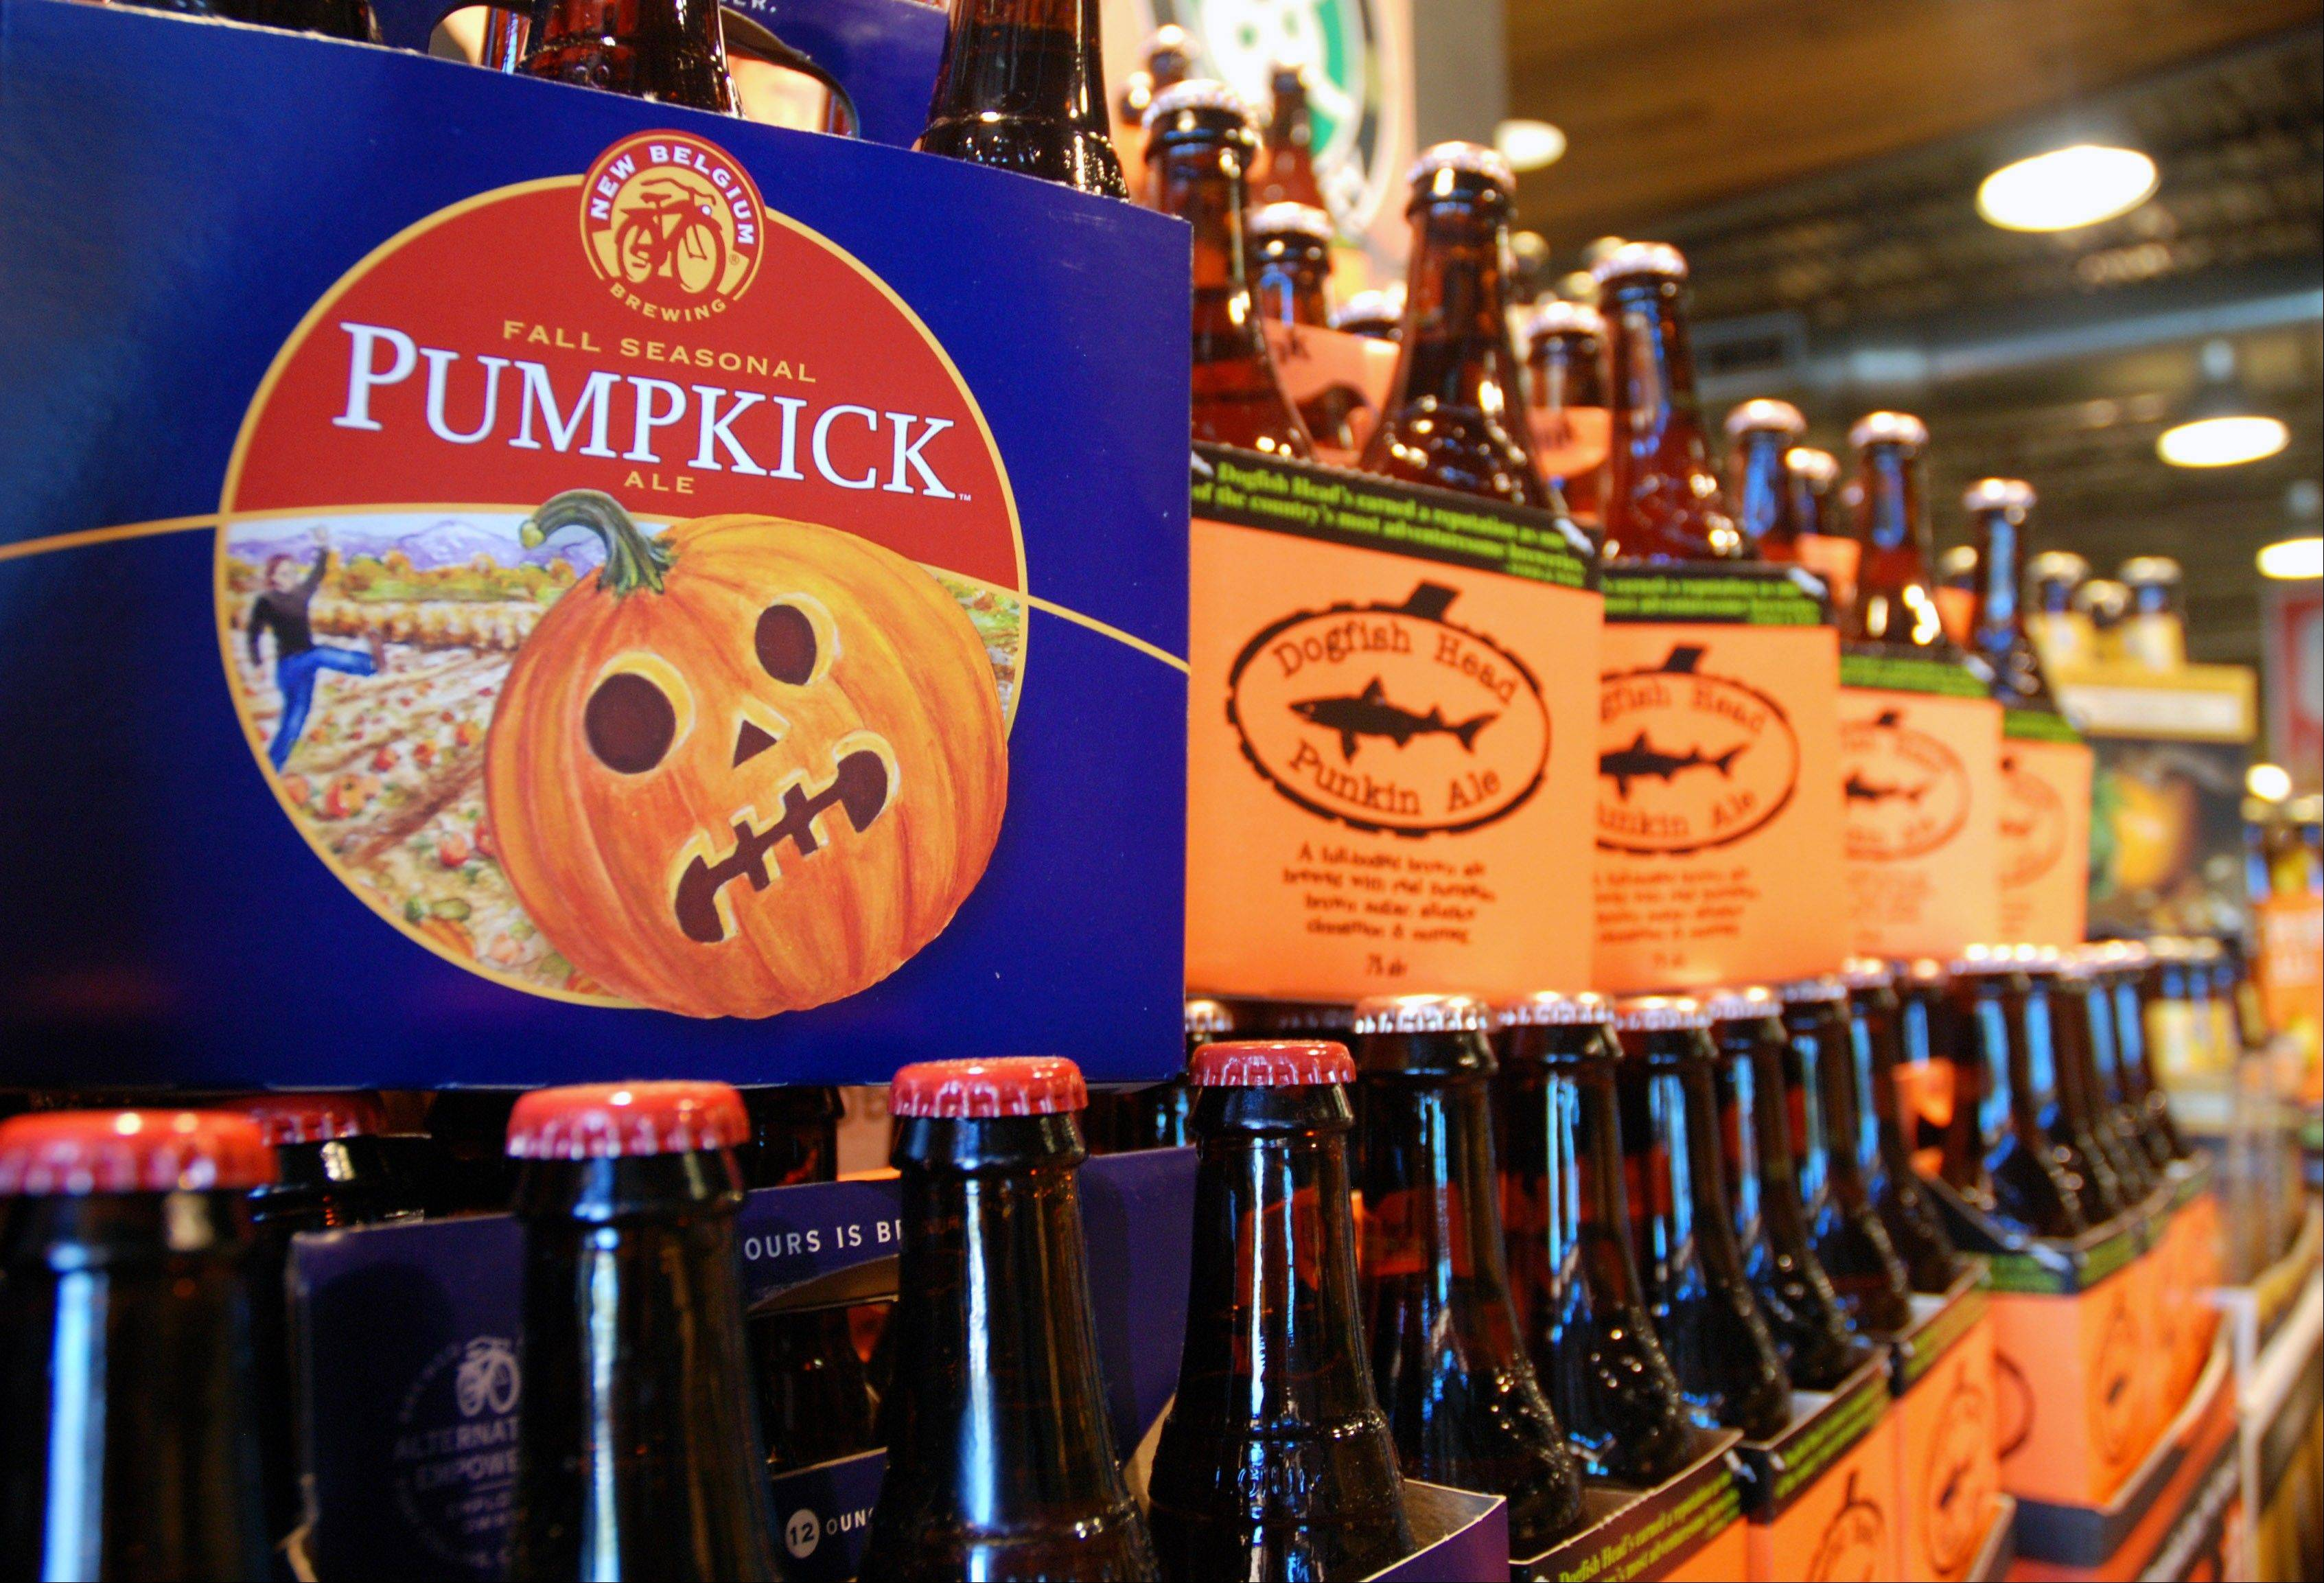 Labor Day may be considered the unofficial end of summer, but some craft brewers couldn't even wait until then to roll out their pumpkin and other fall seasonal beers. Many already have been in stores and on taps for a month.